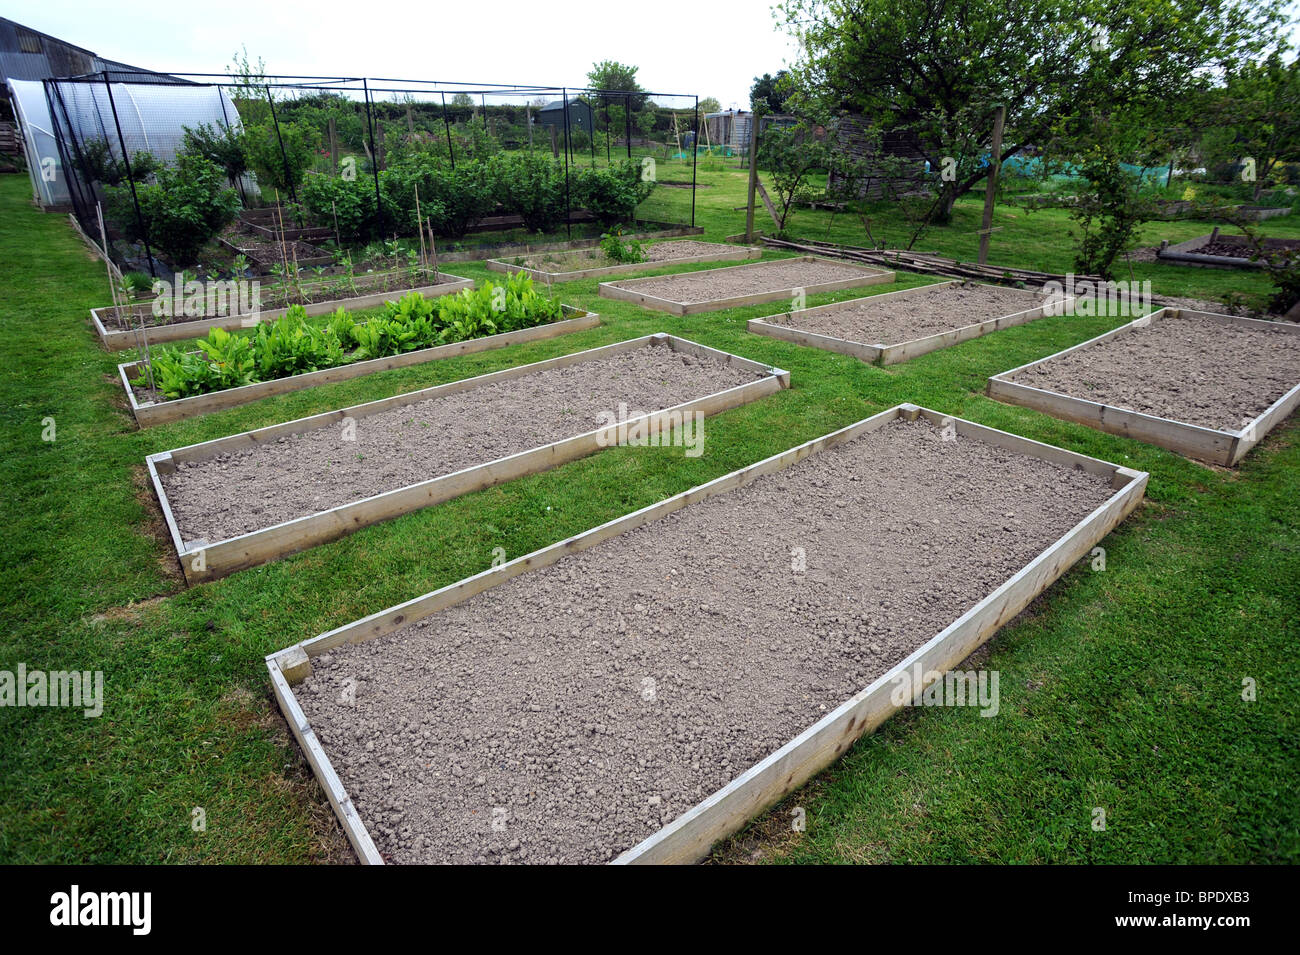 Neat and tidy raised gowing beds on an allotment in sussex - Stock Image